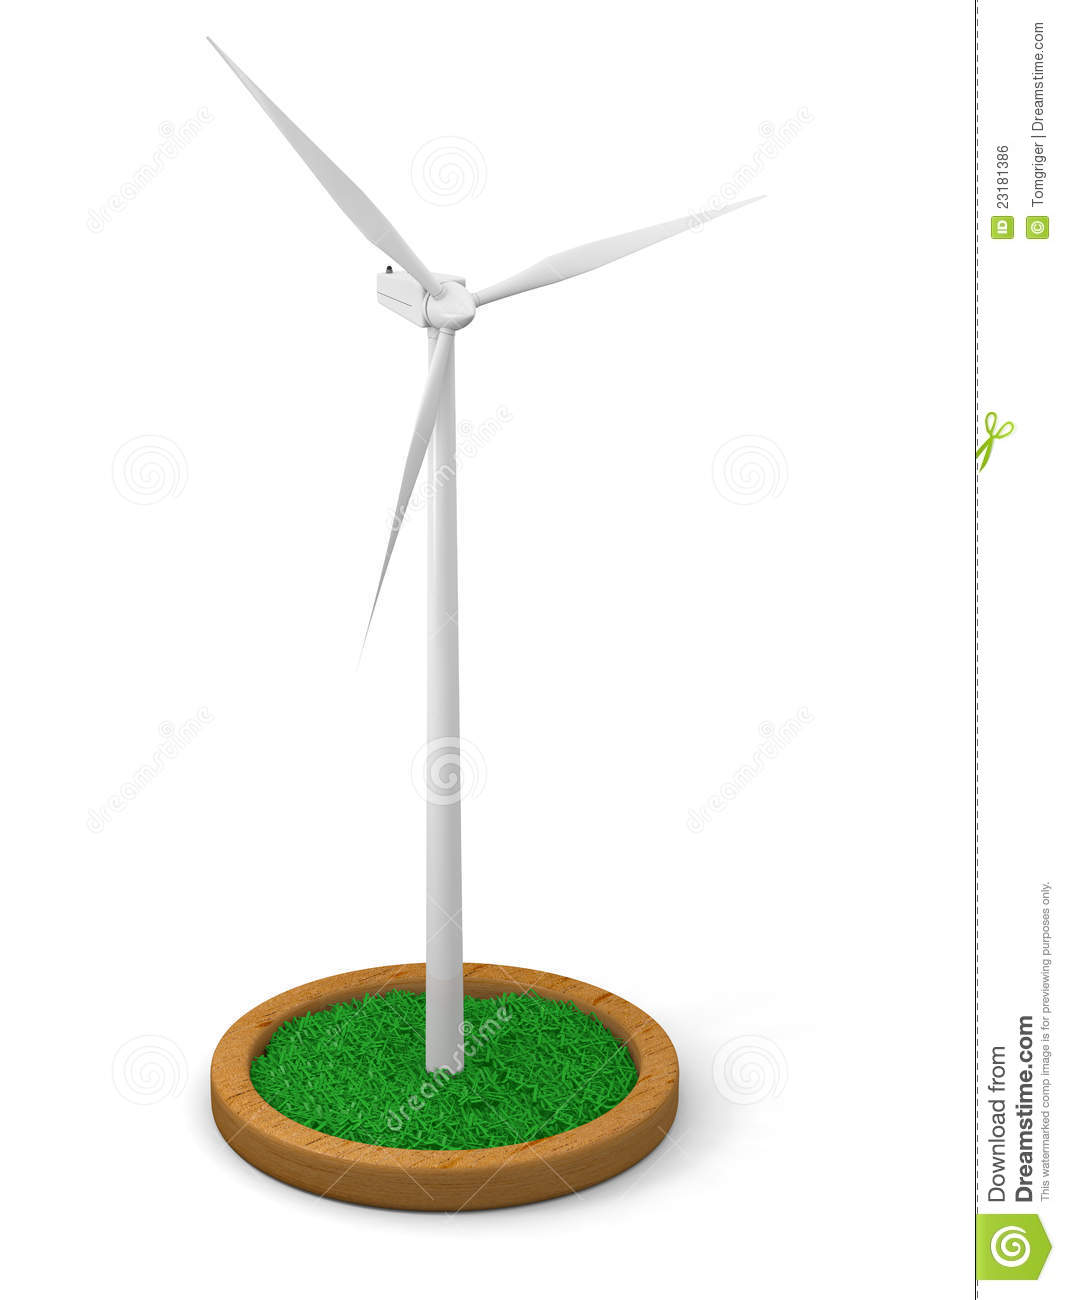 Model of wind turbine with grassy patch on wooden stand with white ...